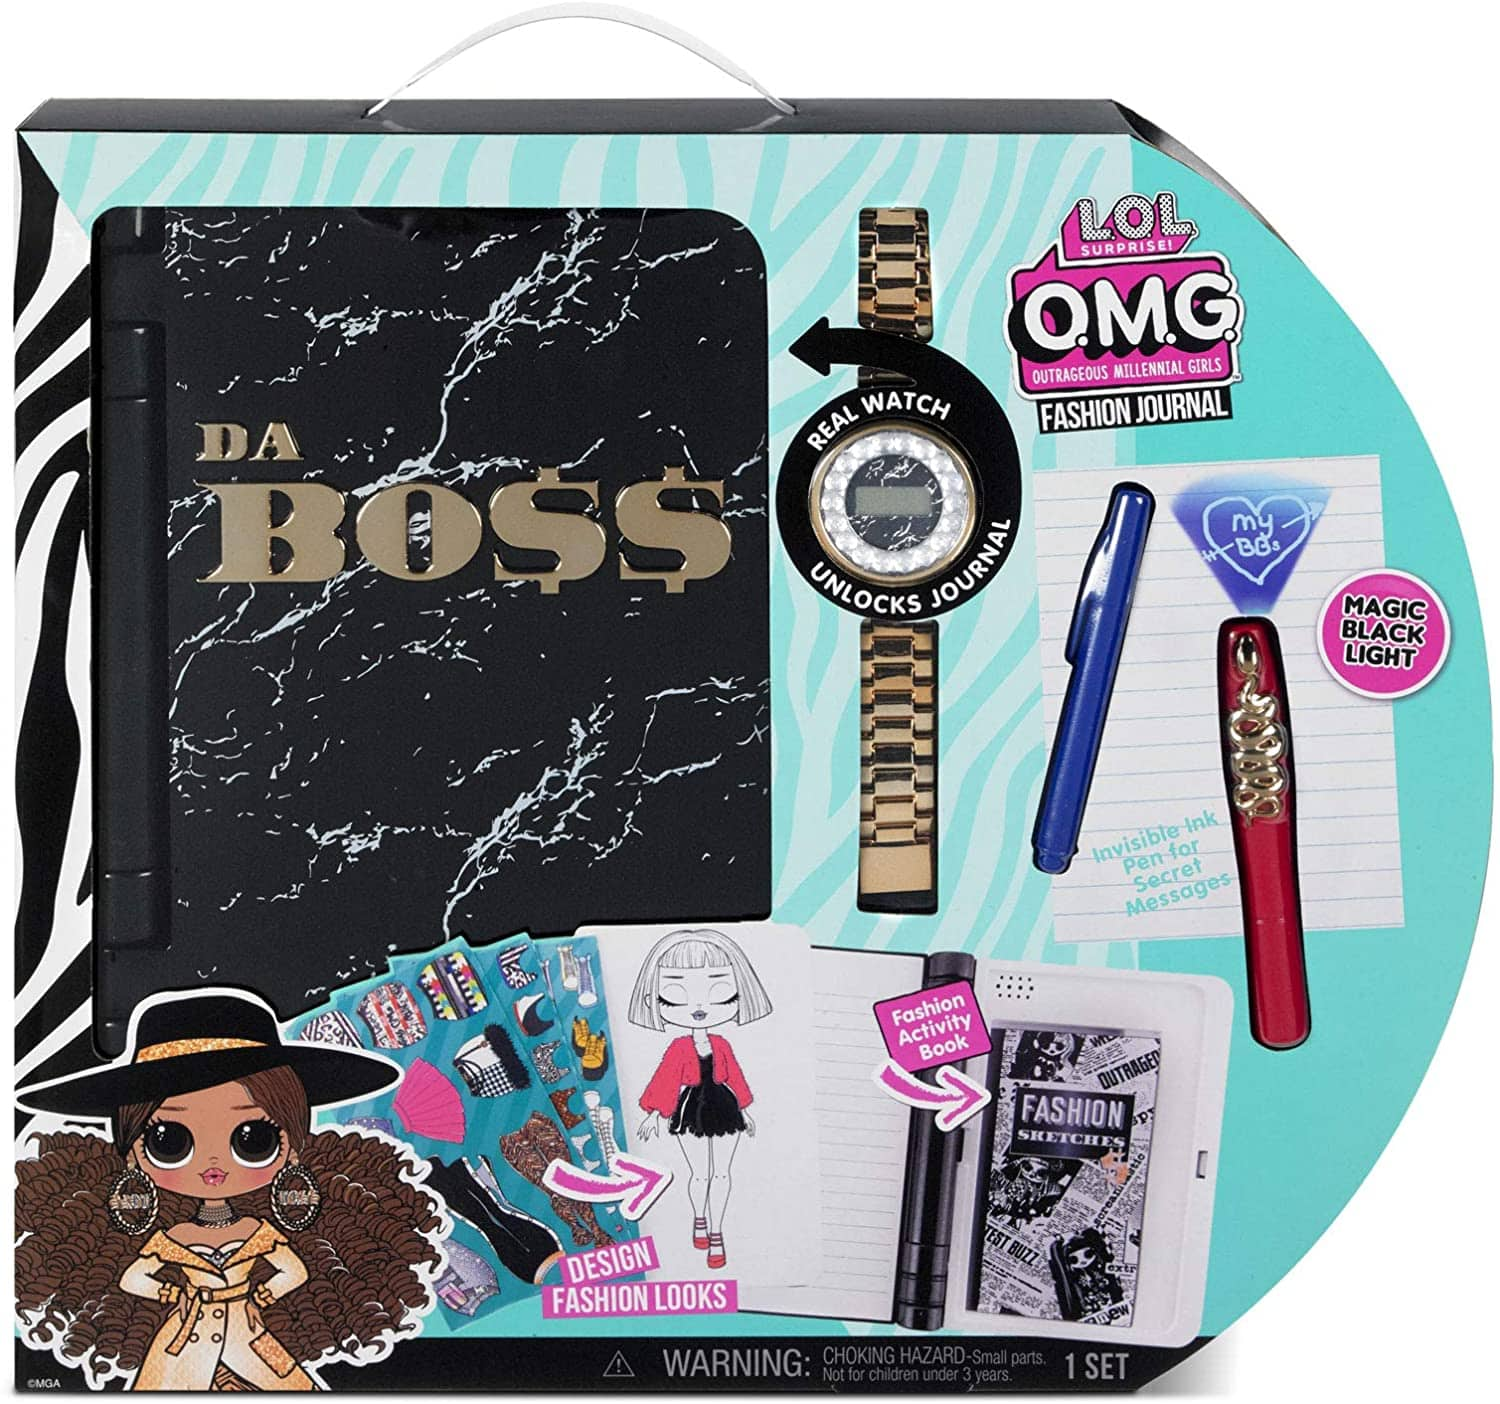 LOL Surprise Kid's OMG Electronic Password Fashion Journal Set $13.16 + Free Shipping w/ Prime or on $25+